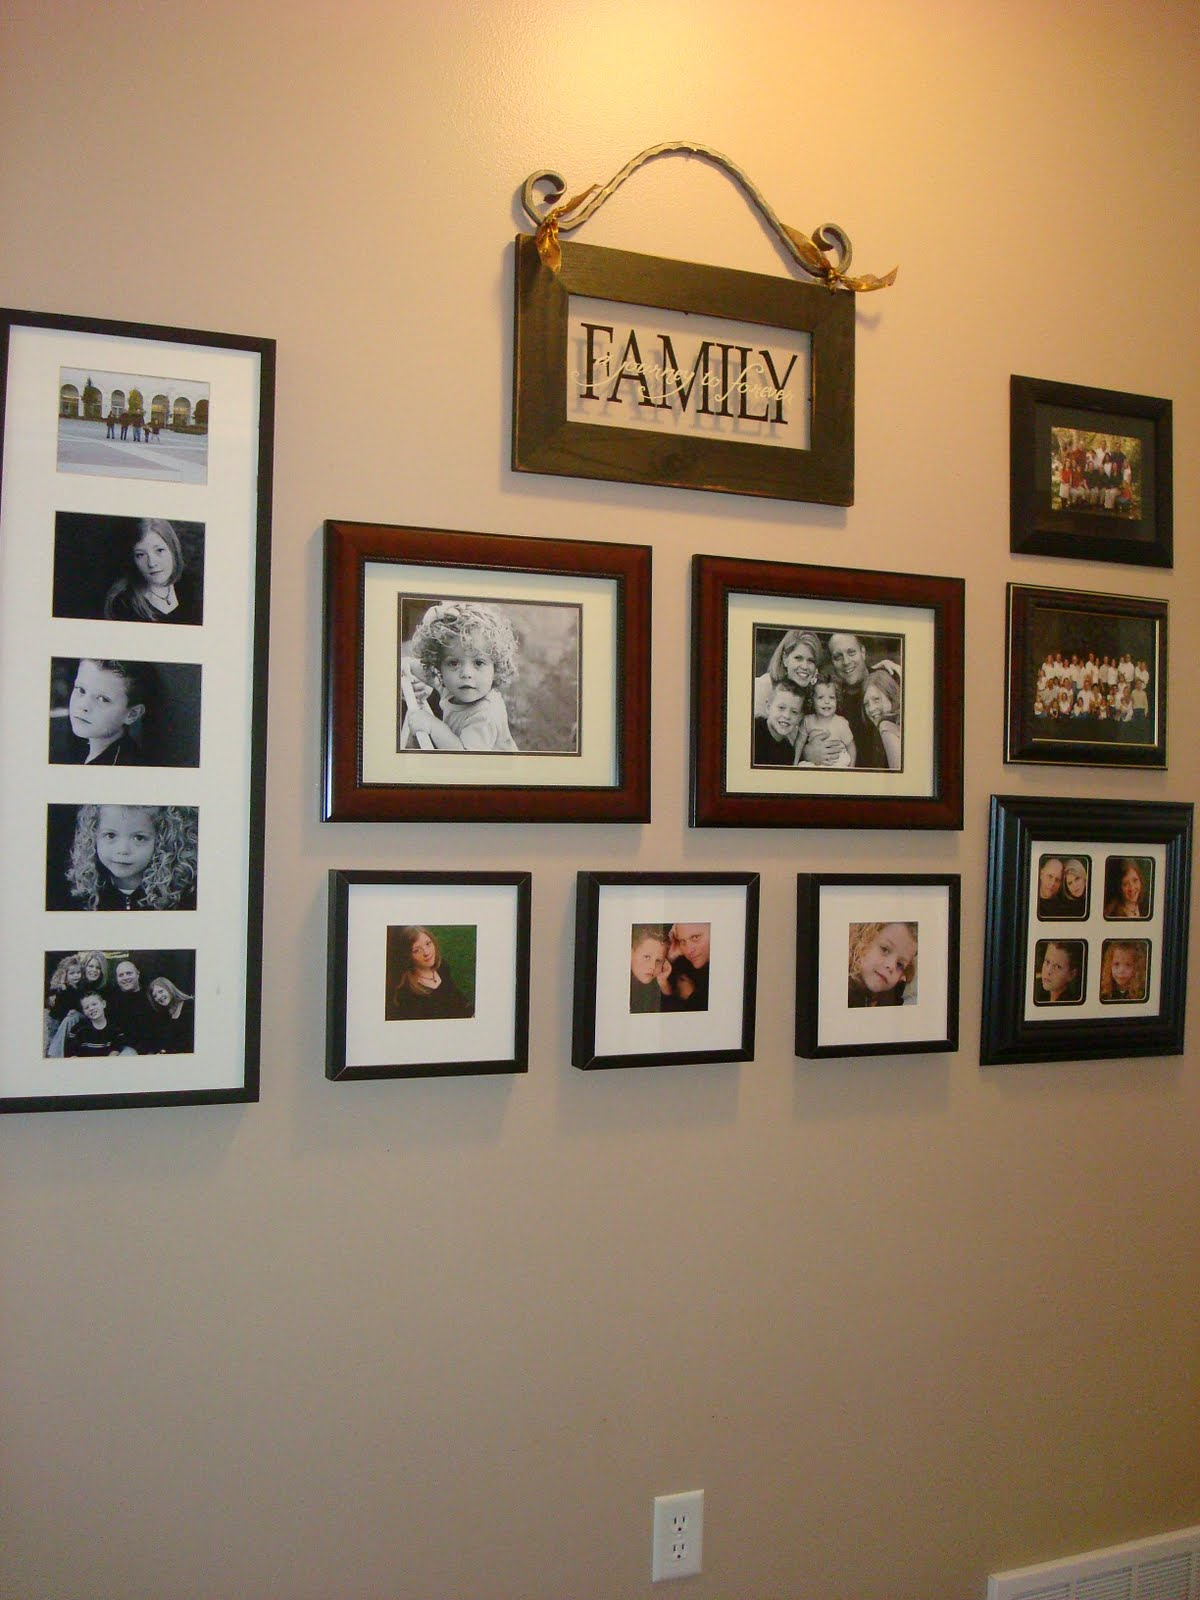 Imaginecozy Arranging Photos On The Wall